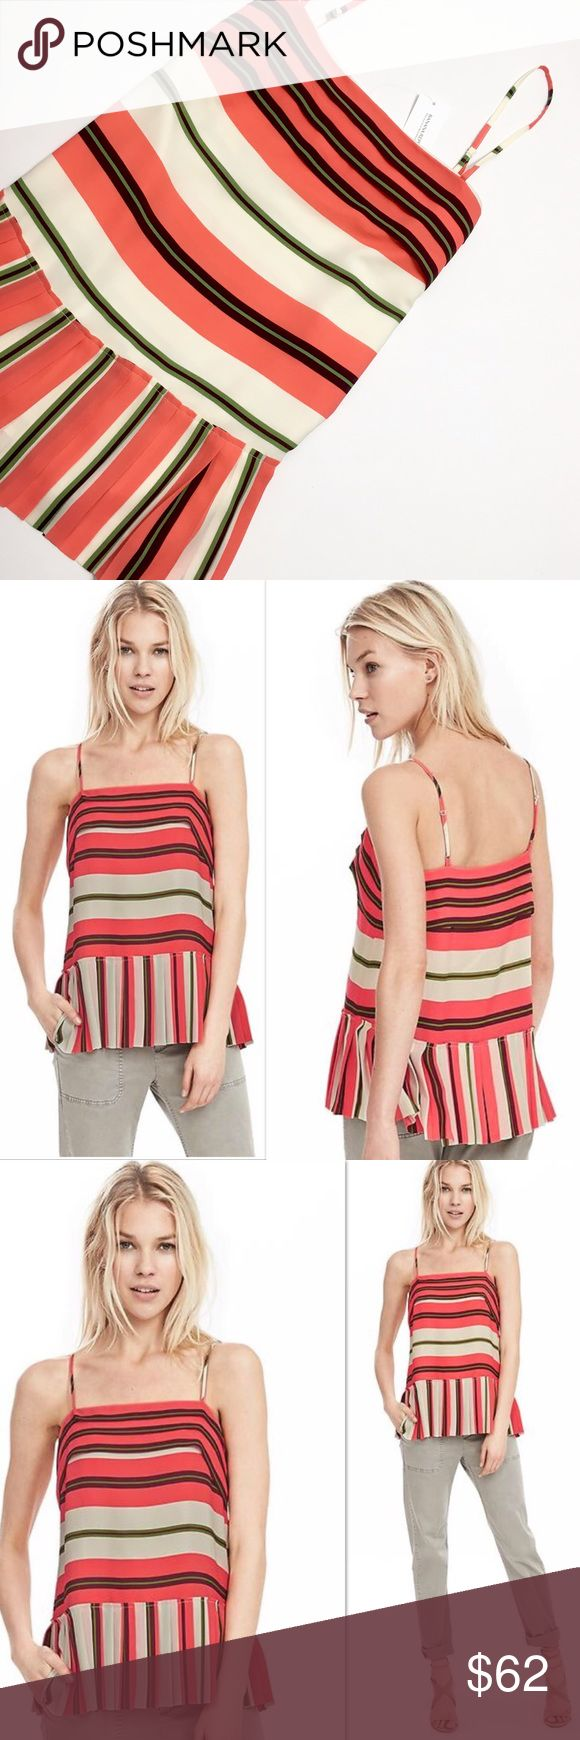 Banana Republic Multi-Stripe Pleated Cami Beautiful Banana Republic Multi-Stripe Pleated Cami.  🔹 100% Polyester  🔹DRY CLEAN 🔹 Imported 🔹 Adjustable Straps 🔹 Pleated Top & hem 🔹Hits at the low hip 🔹 Approx. measurements: will be posted soon.   🚫Please note: Model is wearing the exact same style Cami but slightly different colors, the model has beige on the stripes and the actual Cami I'm selling the stripes are white, not beige. 🚫Photo is only to show the style/look. Banana Republic…